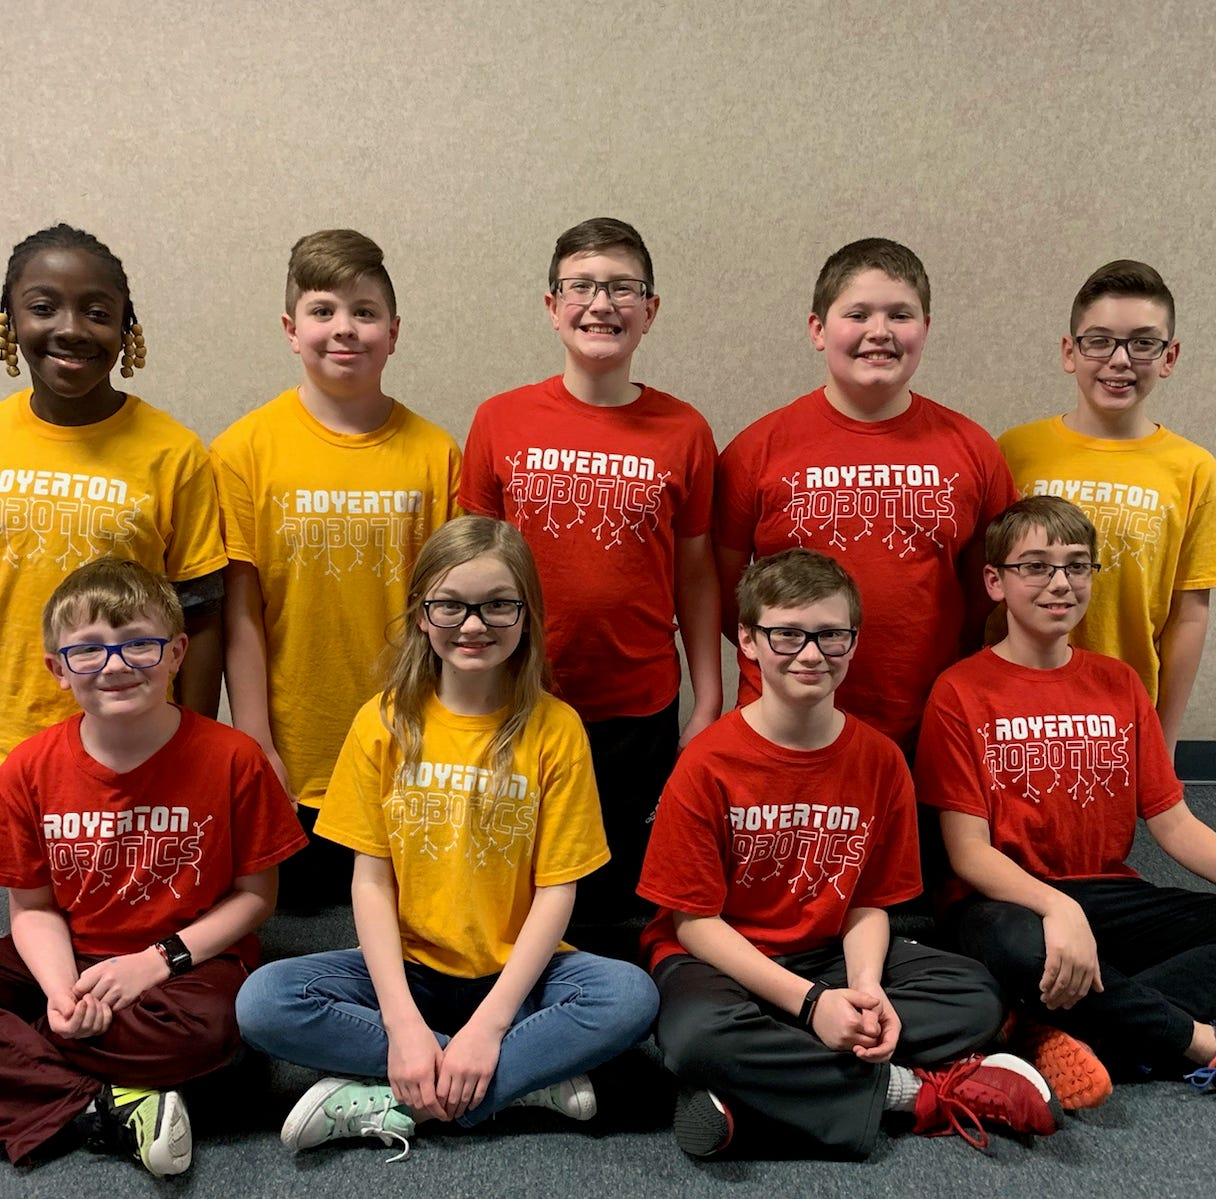 2 local robotics teams headed to World Championship are learning STEM skills along the way